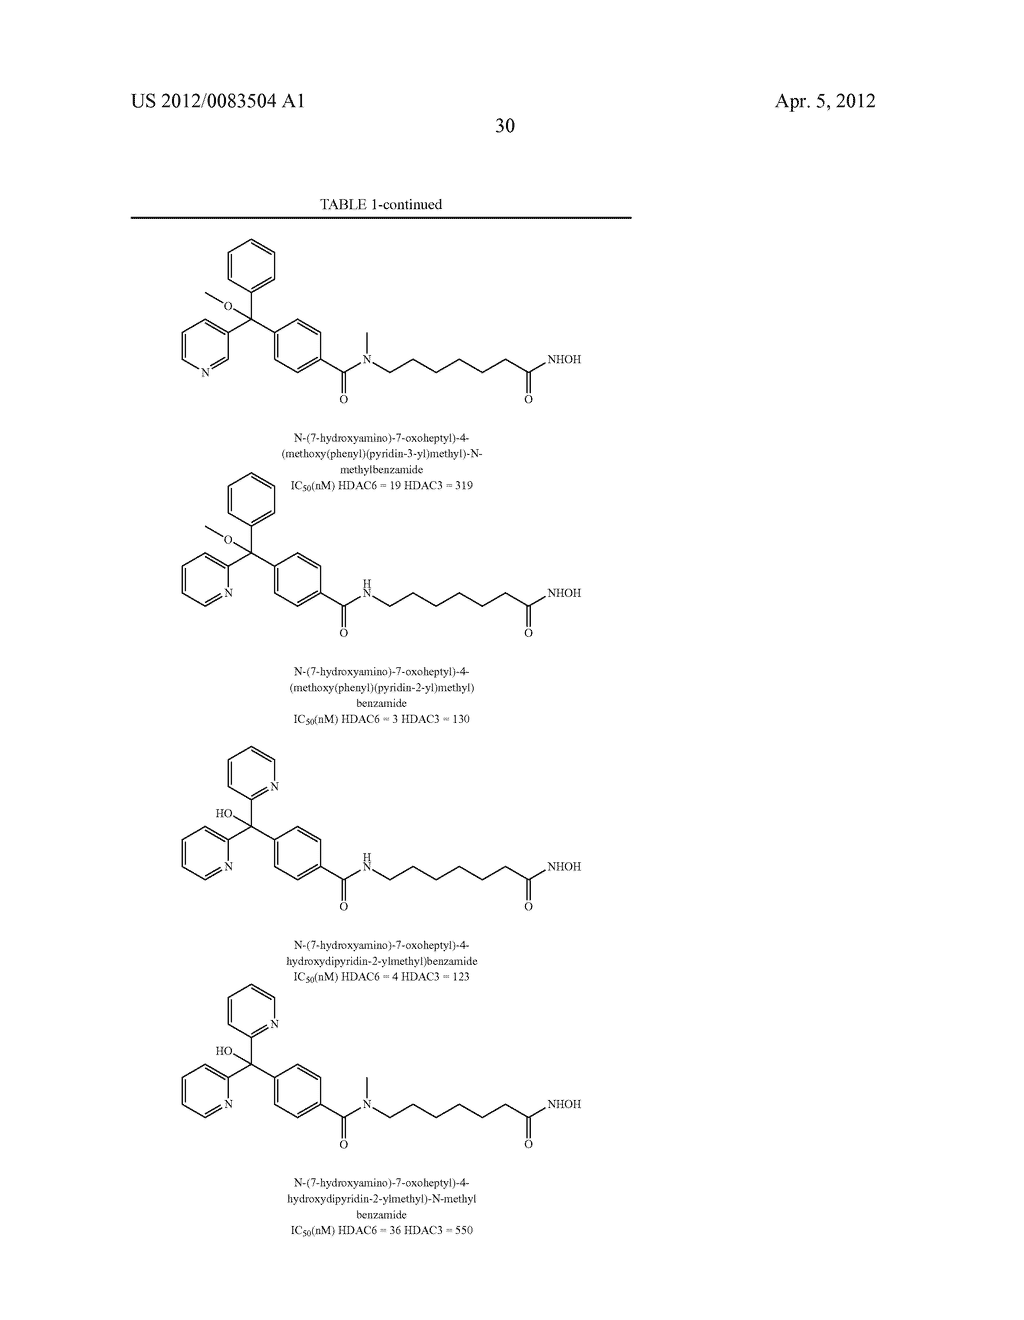 Reverse Amide Compounds As Protein Deacetylase Inhibitors And Methods Of     Use Thereof - diagram, schematic, and image 31